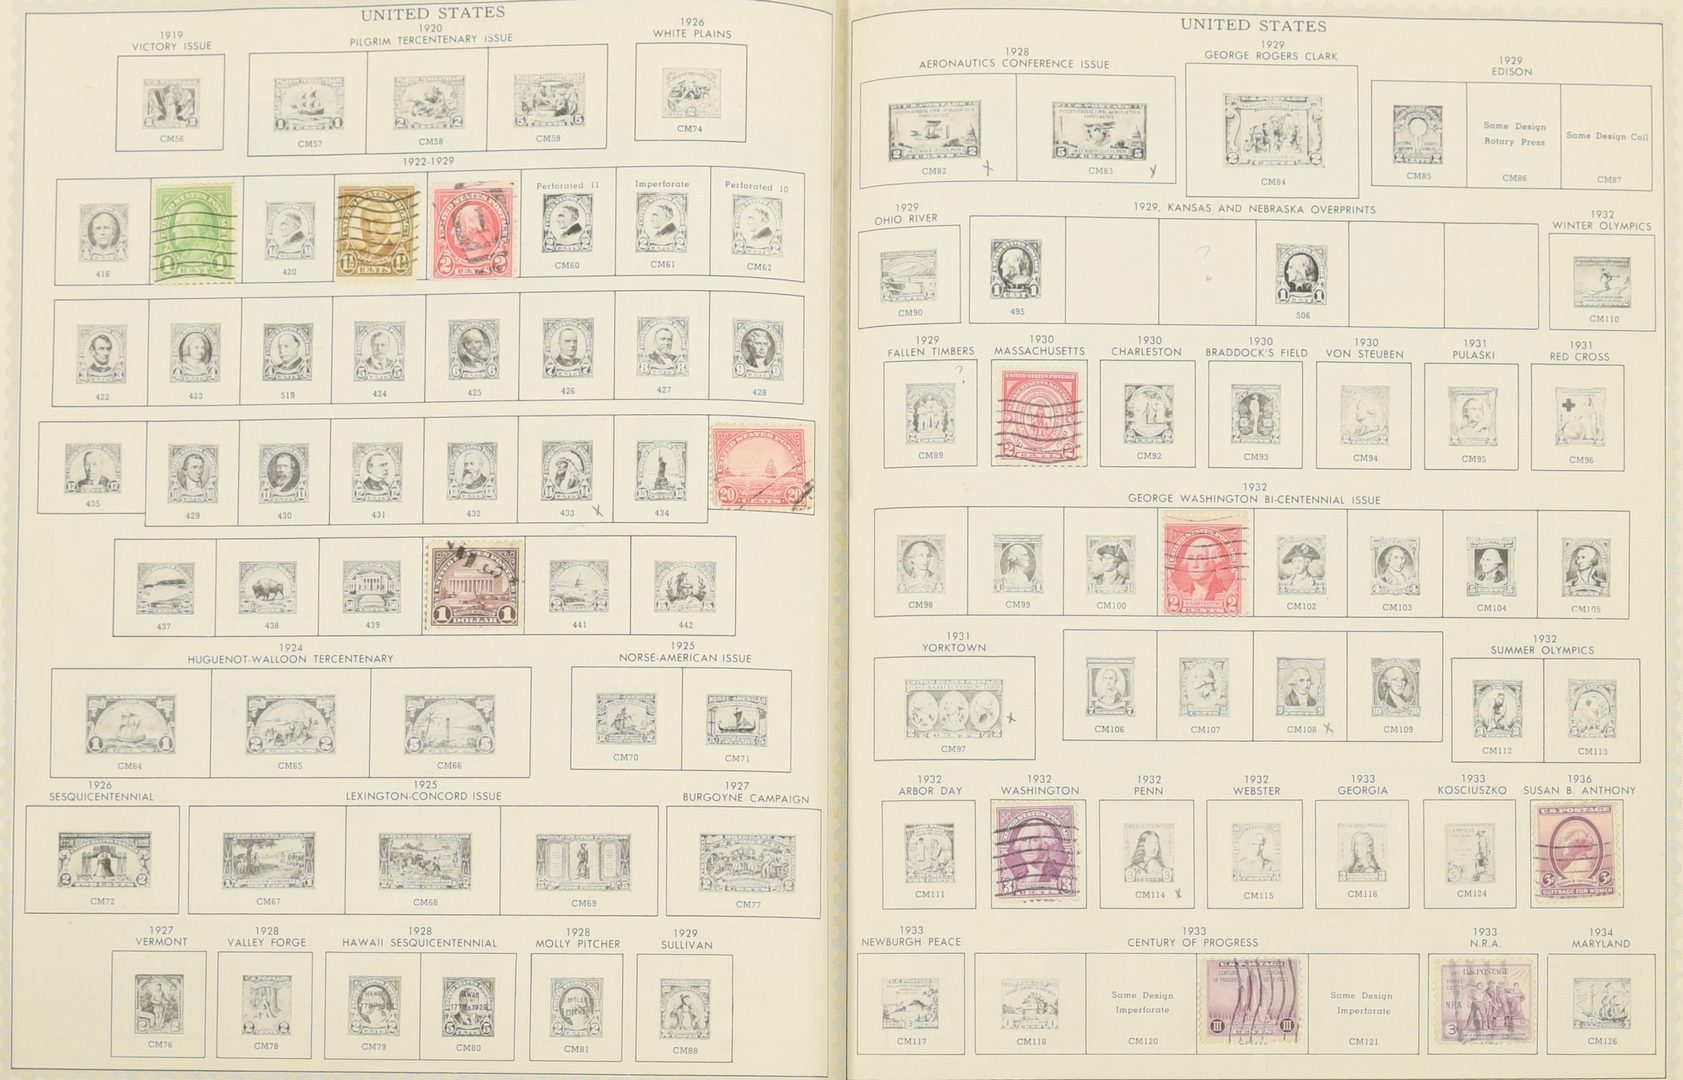 Lot 754: Collection of United States and World Stamp and Stamp Covers, c. 1881-1997